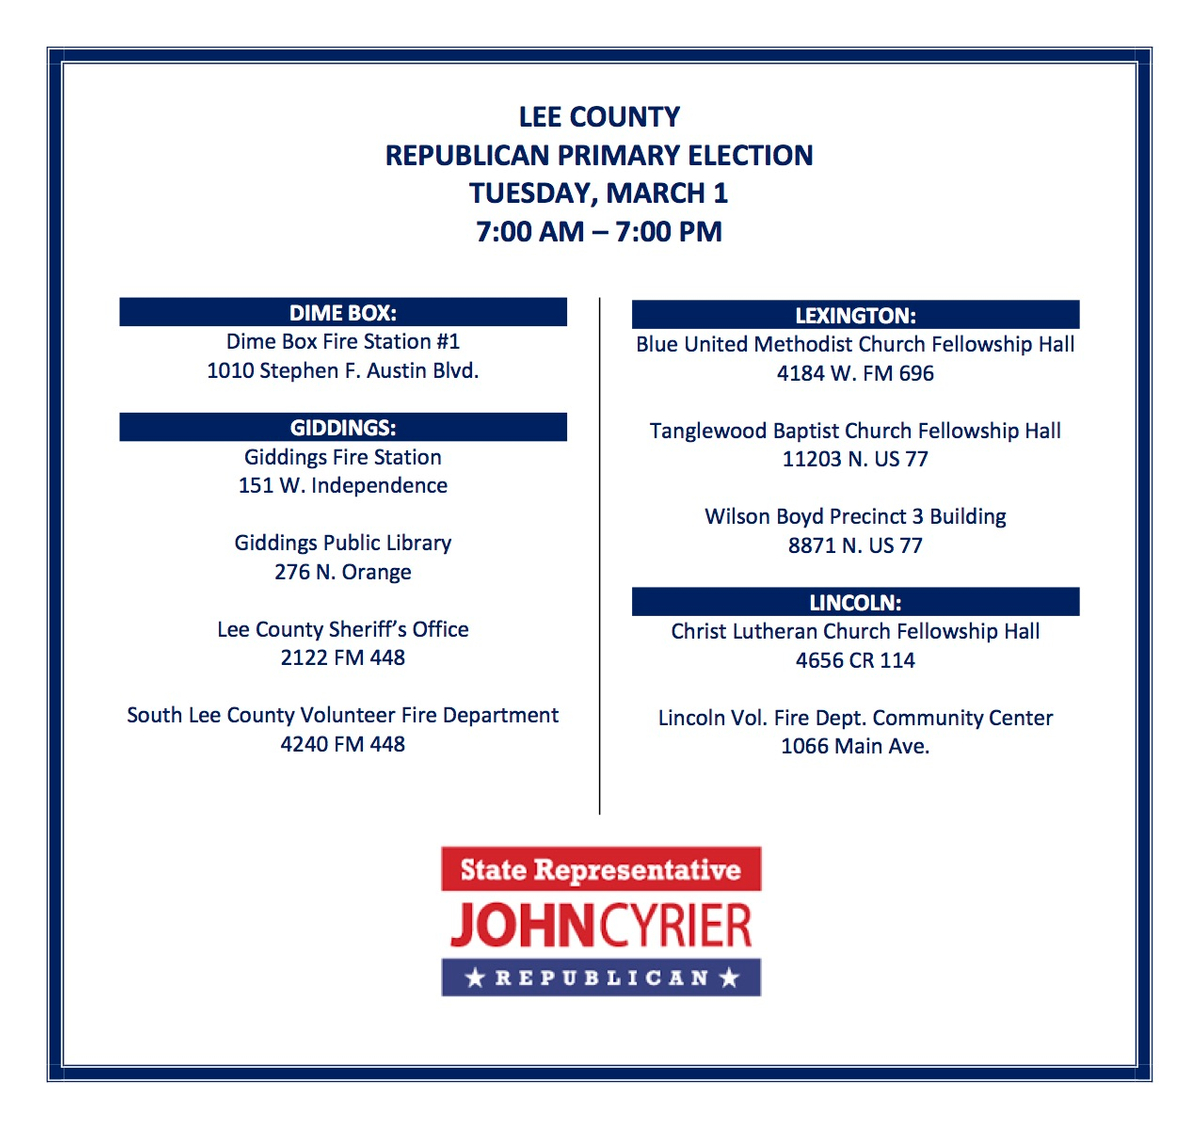 Lee County Republican Primary Election 2016 copy.jpg